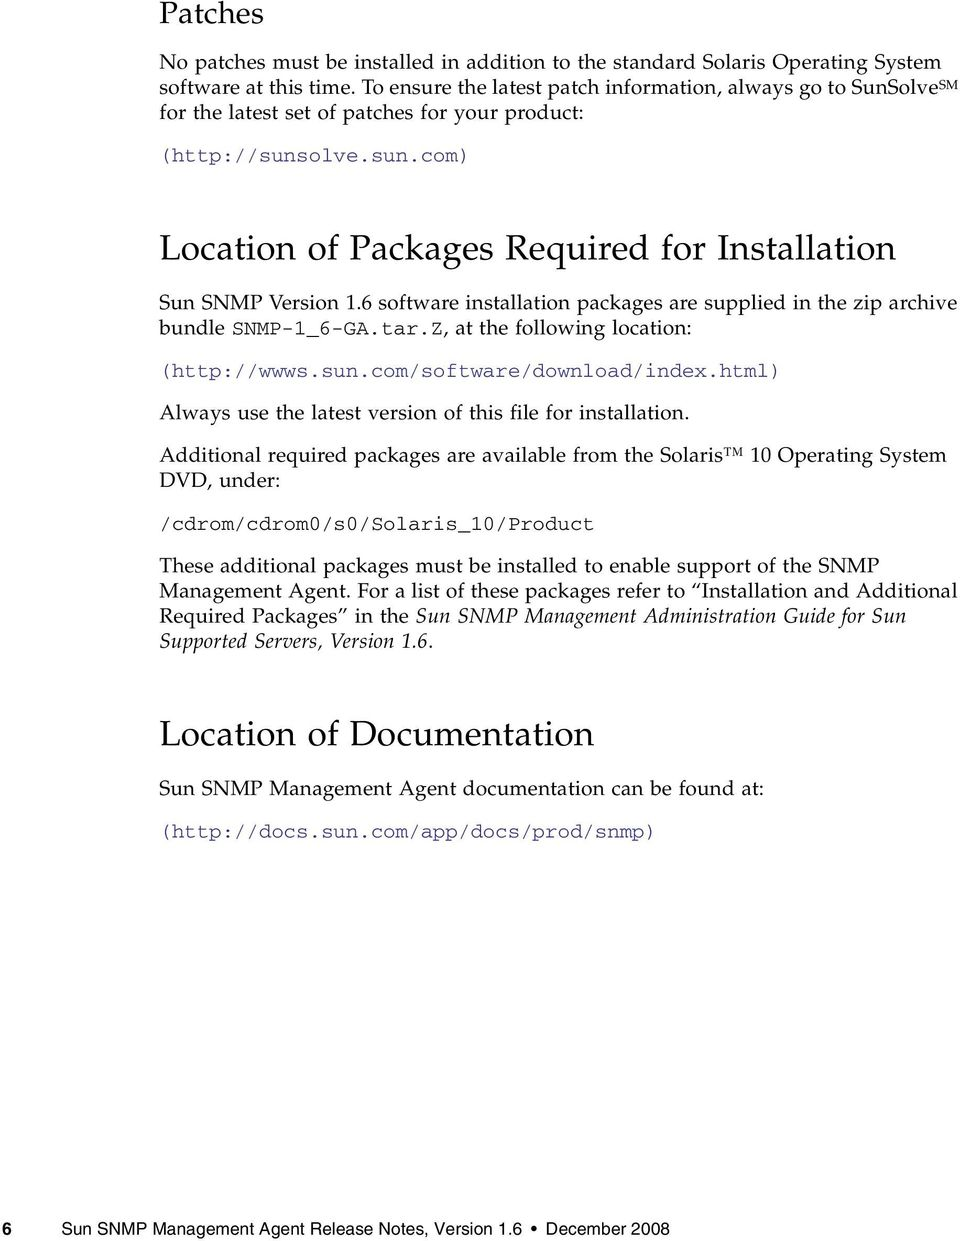 6 software installation packages are supplied in the zip archive bundle SNMP-1_6-GA.tar.Z, at the following location: (http://wwws.sun.com/software/download/index.